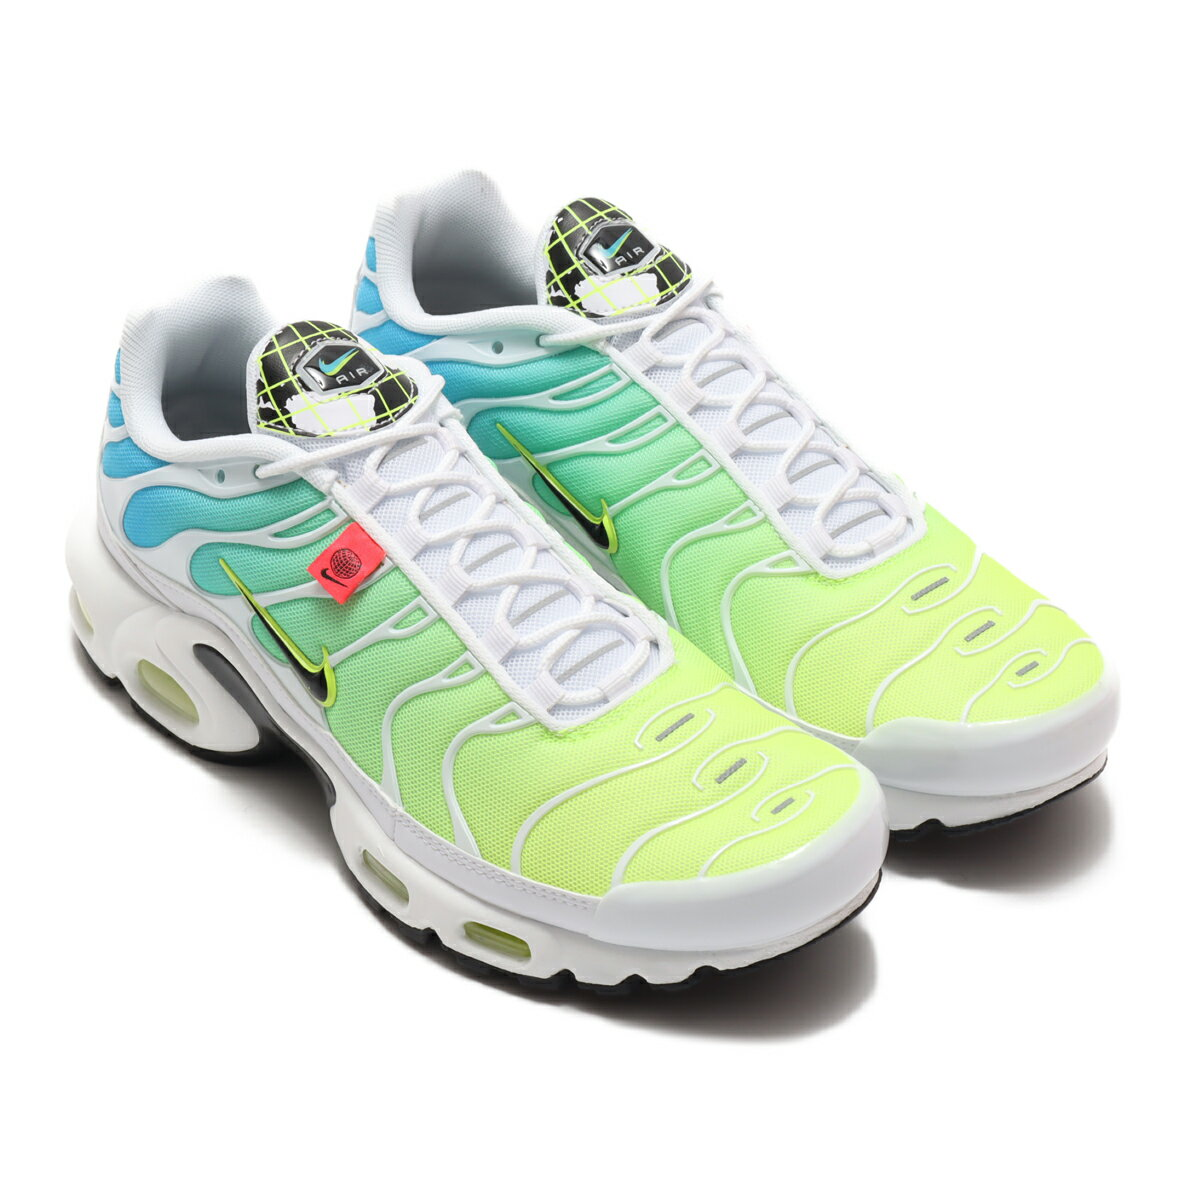 メンズ靴, スニーカー NIKE AIR MAX PLUS WW( WW)WHITEBLACK-BLUE FURY-VOLT 20FA-I at20-c